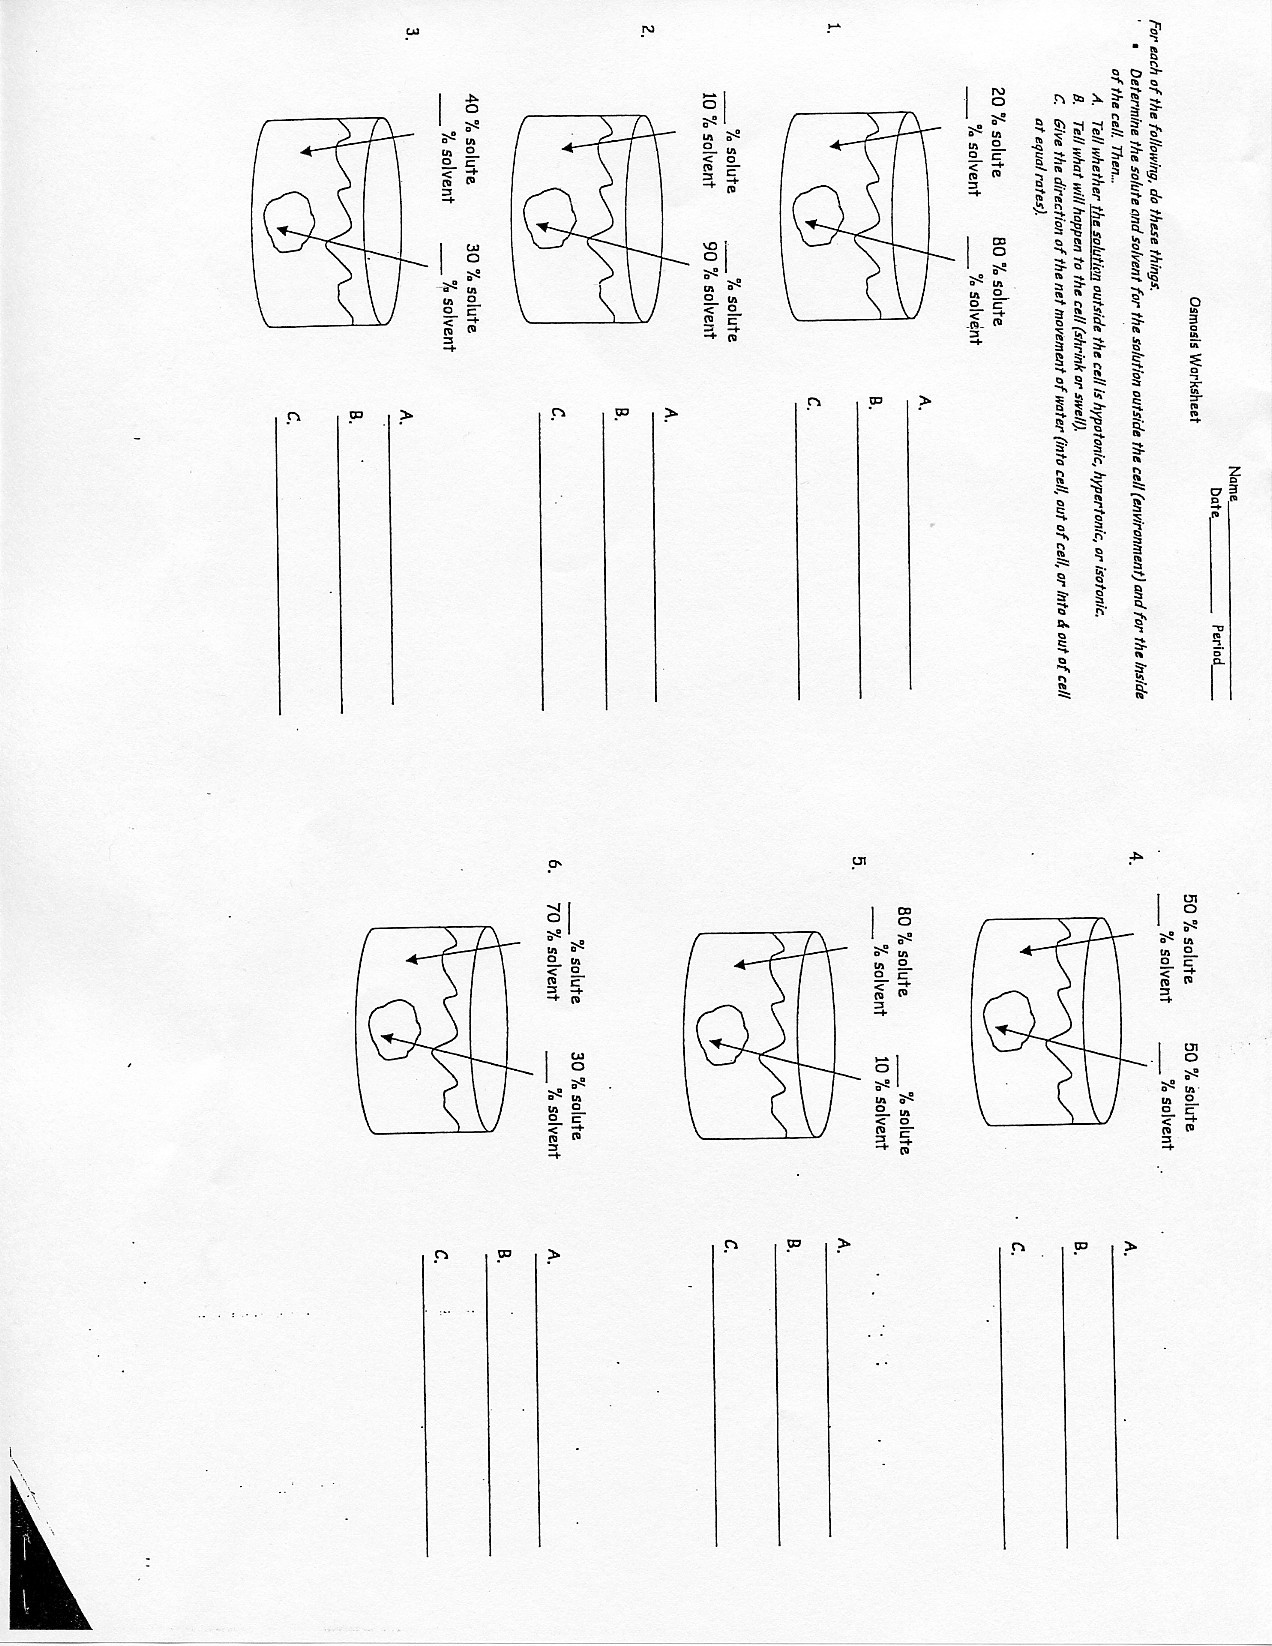 Cell Division Worksheet Answers Cell Division and Mitosis Worksheet Answers Printable